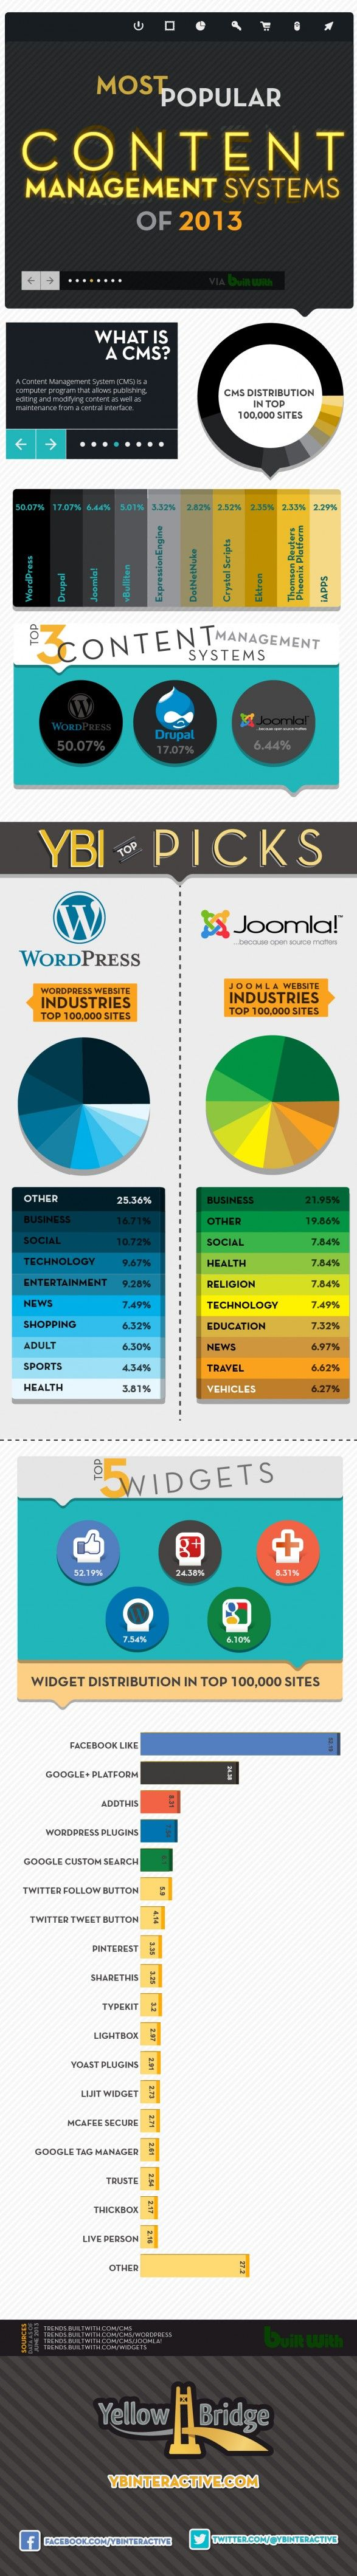 Most Popular Content Management Systems Of 2013